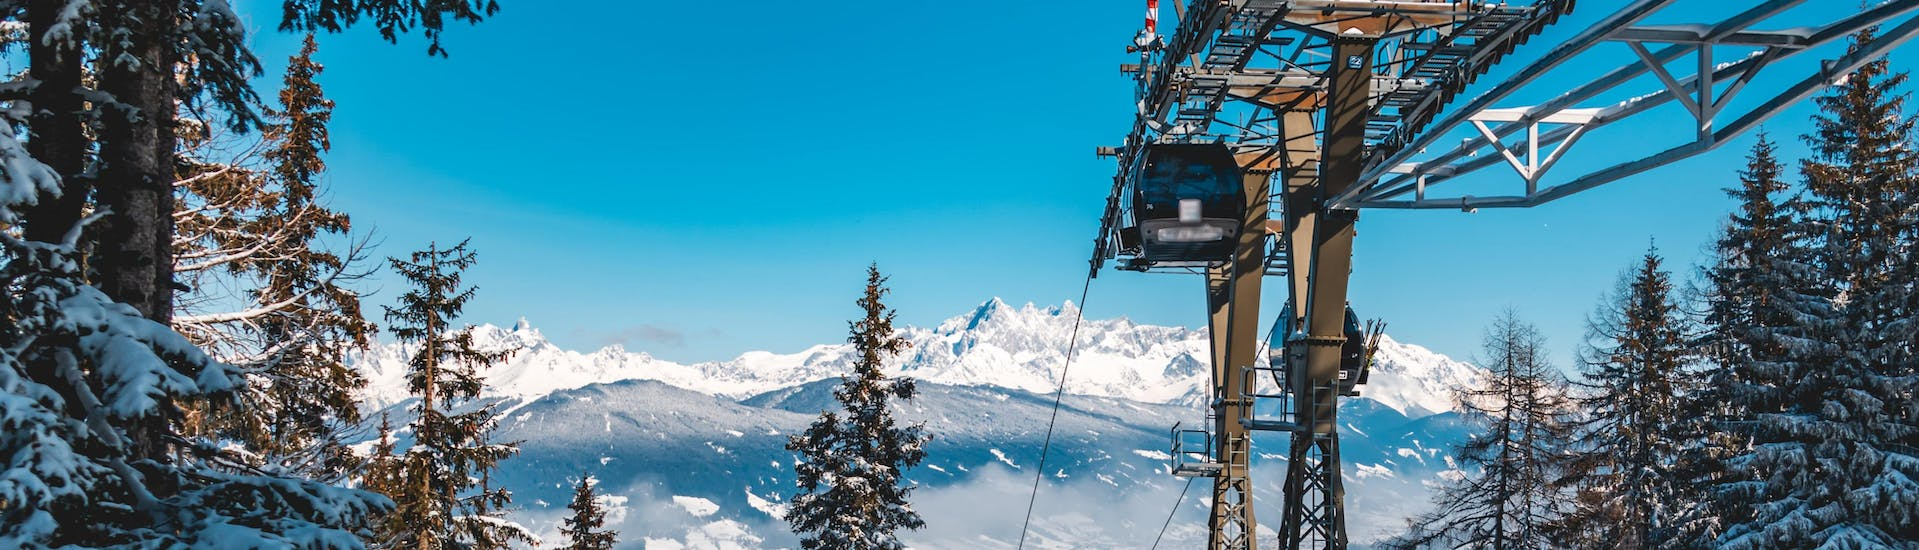 An image of a gondola in the Austrian ski resort of Flachau, where many visitors book ski lessons with one of the local ski schools.